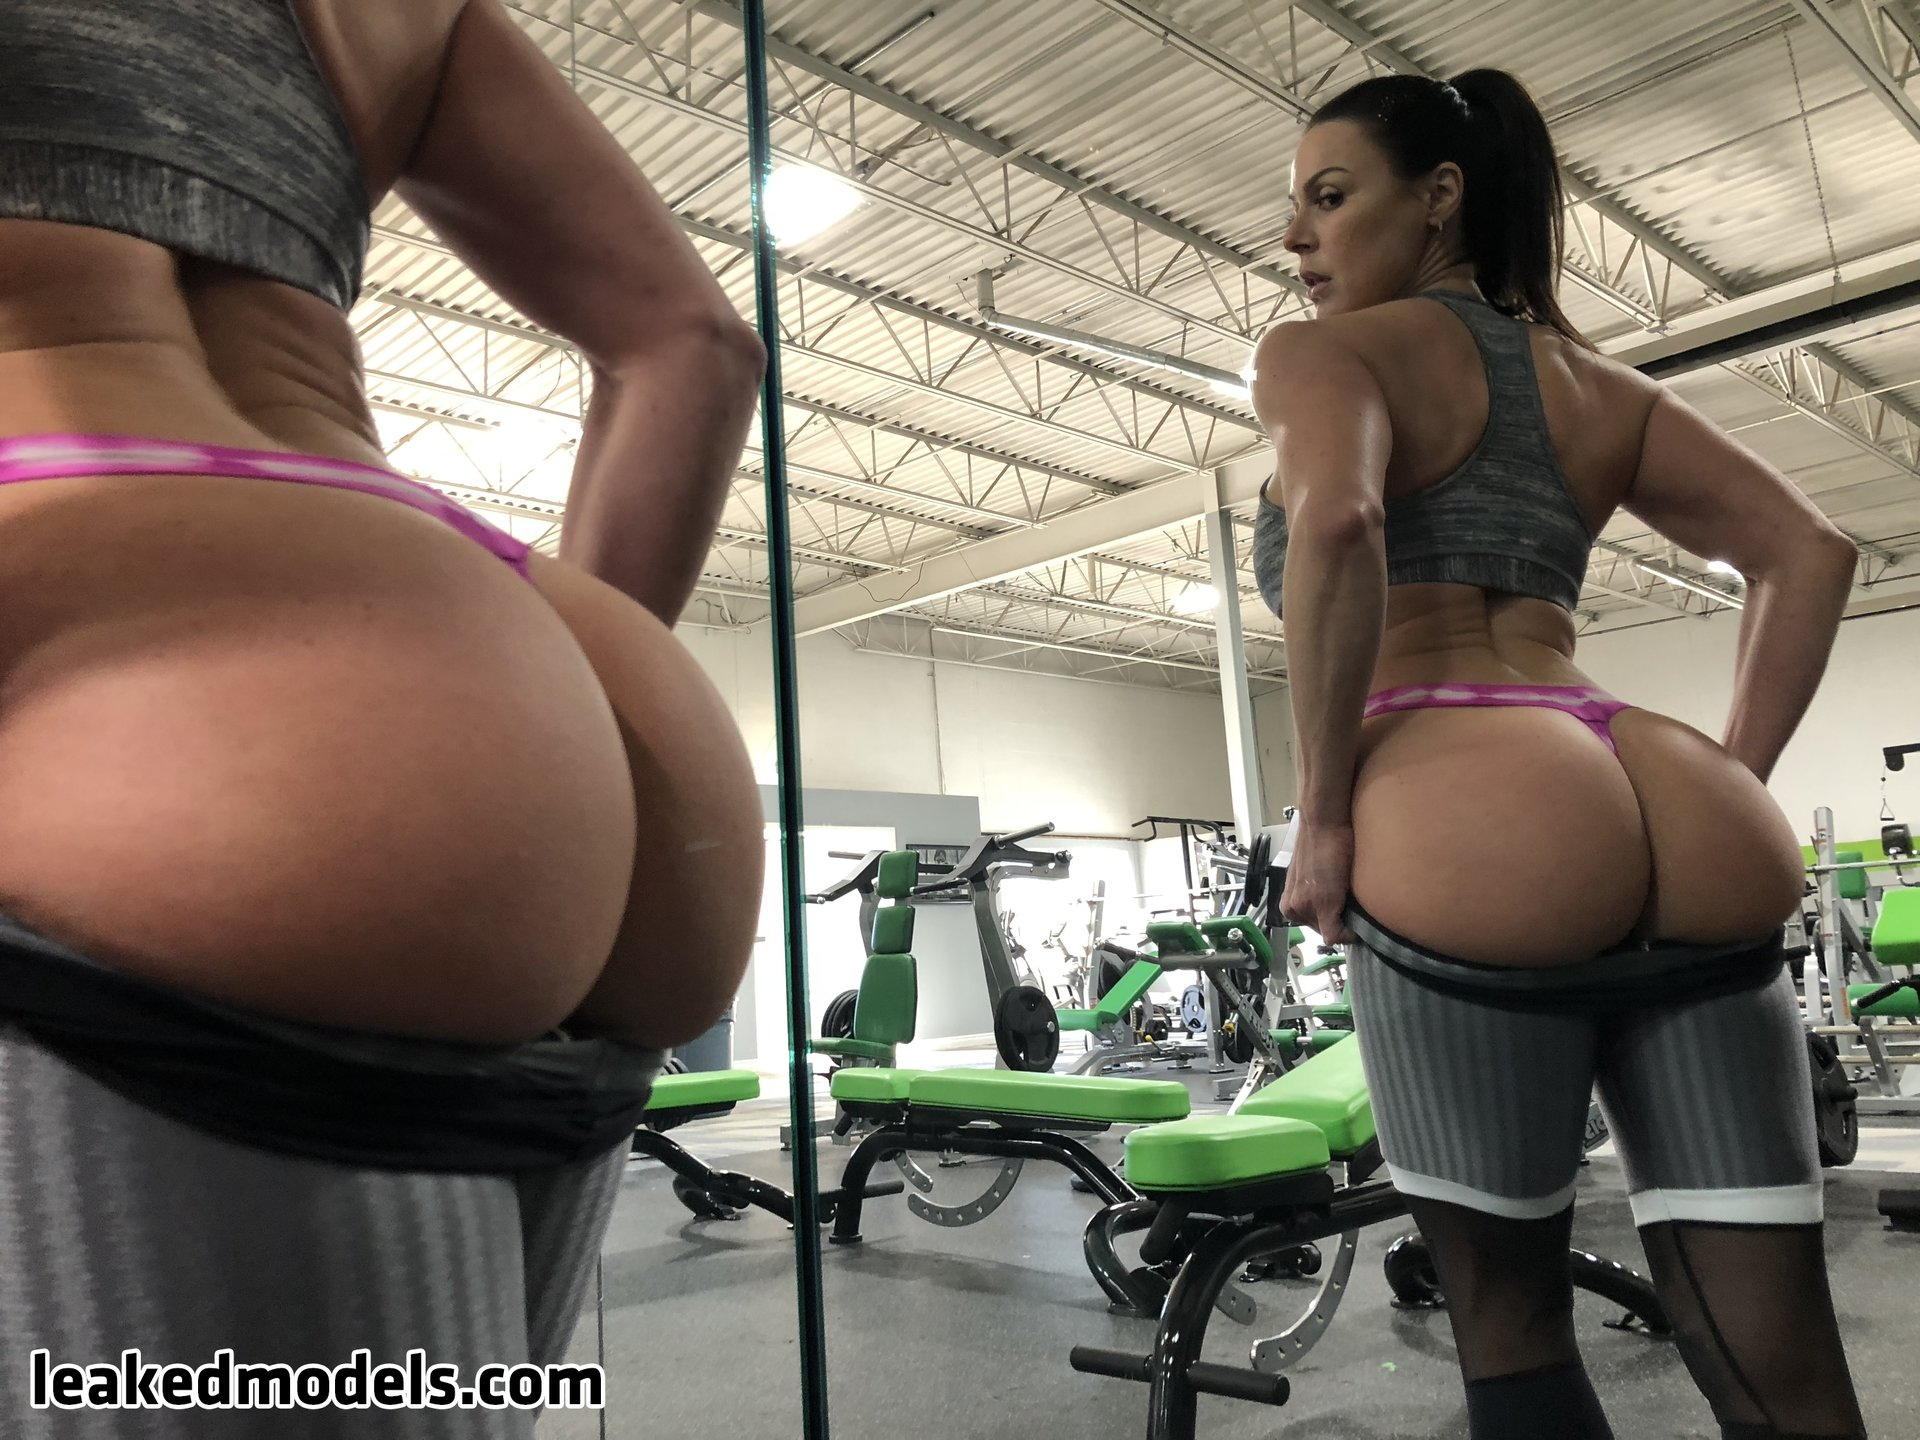 Kendra Lust – kendralust OnlyFans Leaks (56 Photos and 9 Videos)